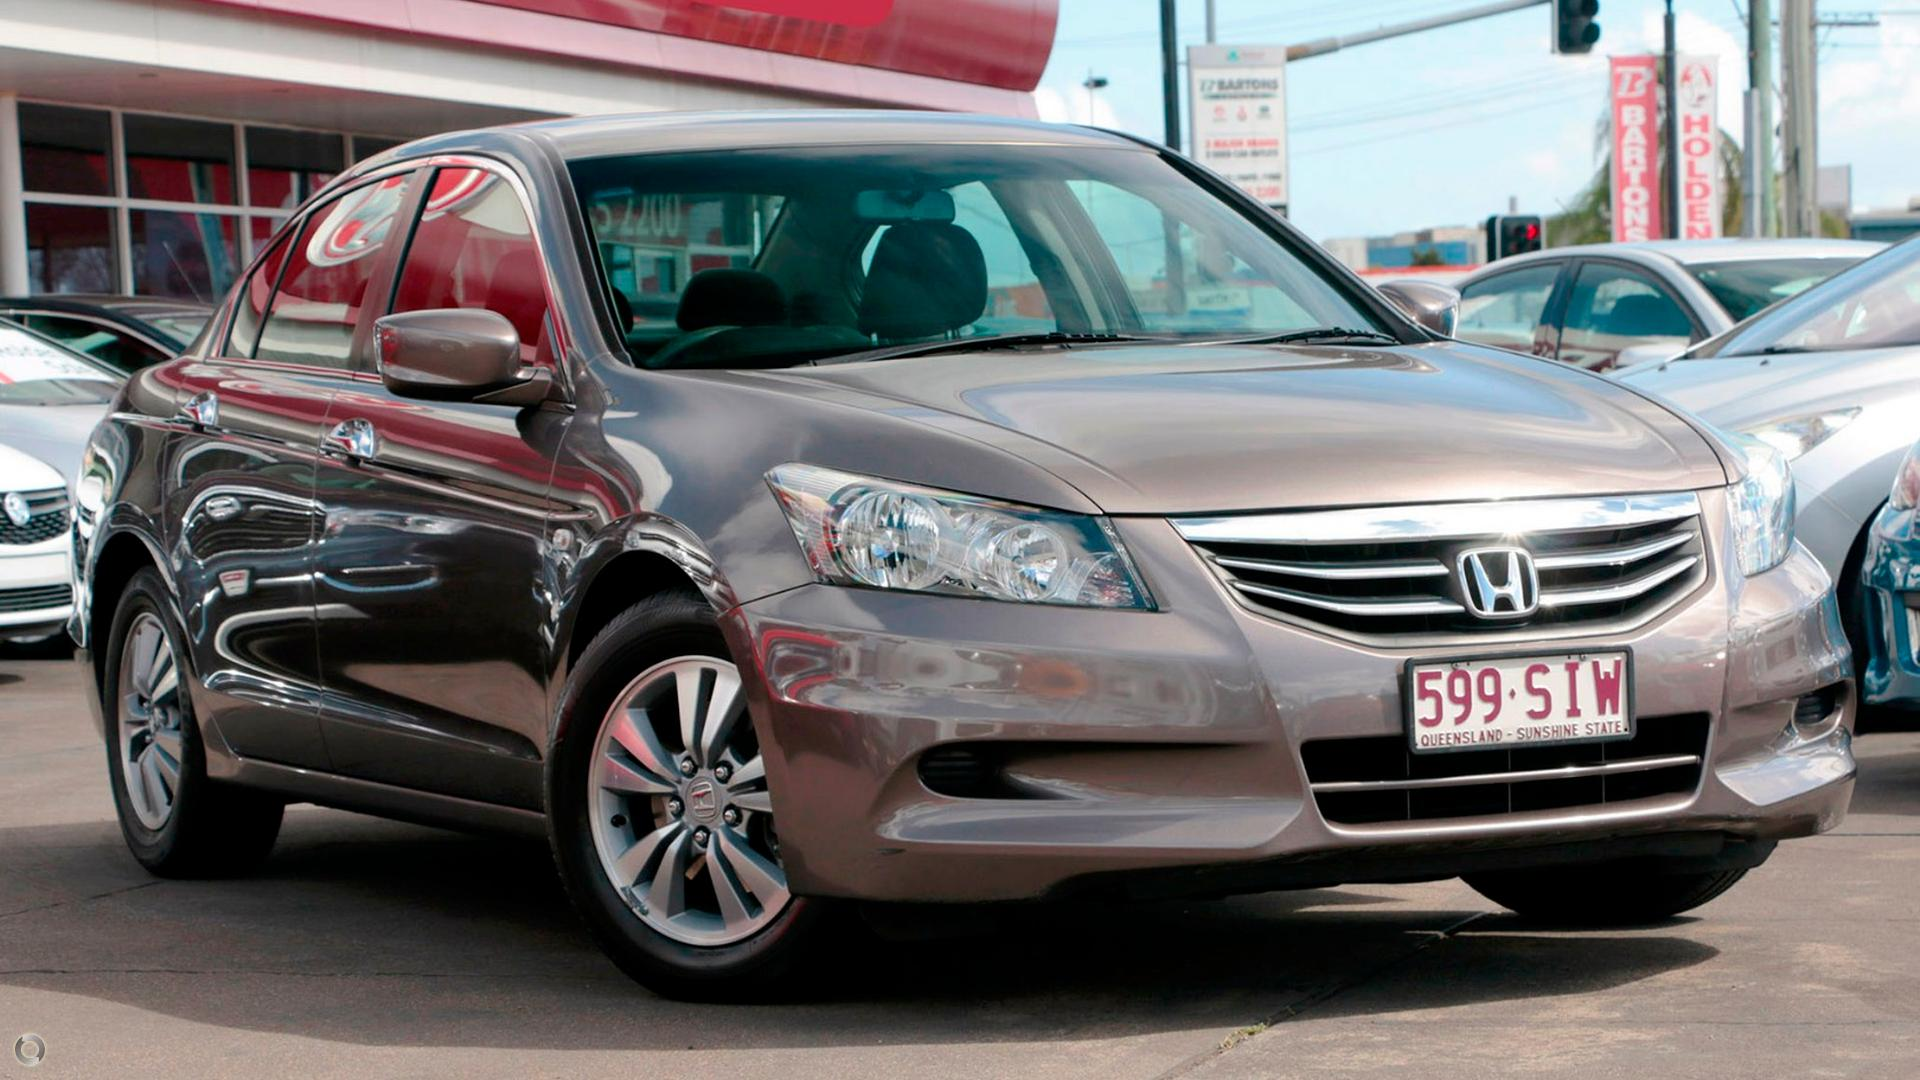 2012 Honda Accord VTi 8th Gen